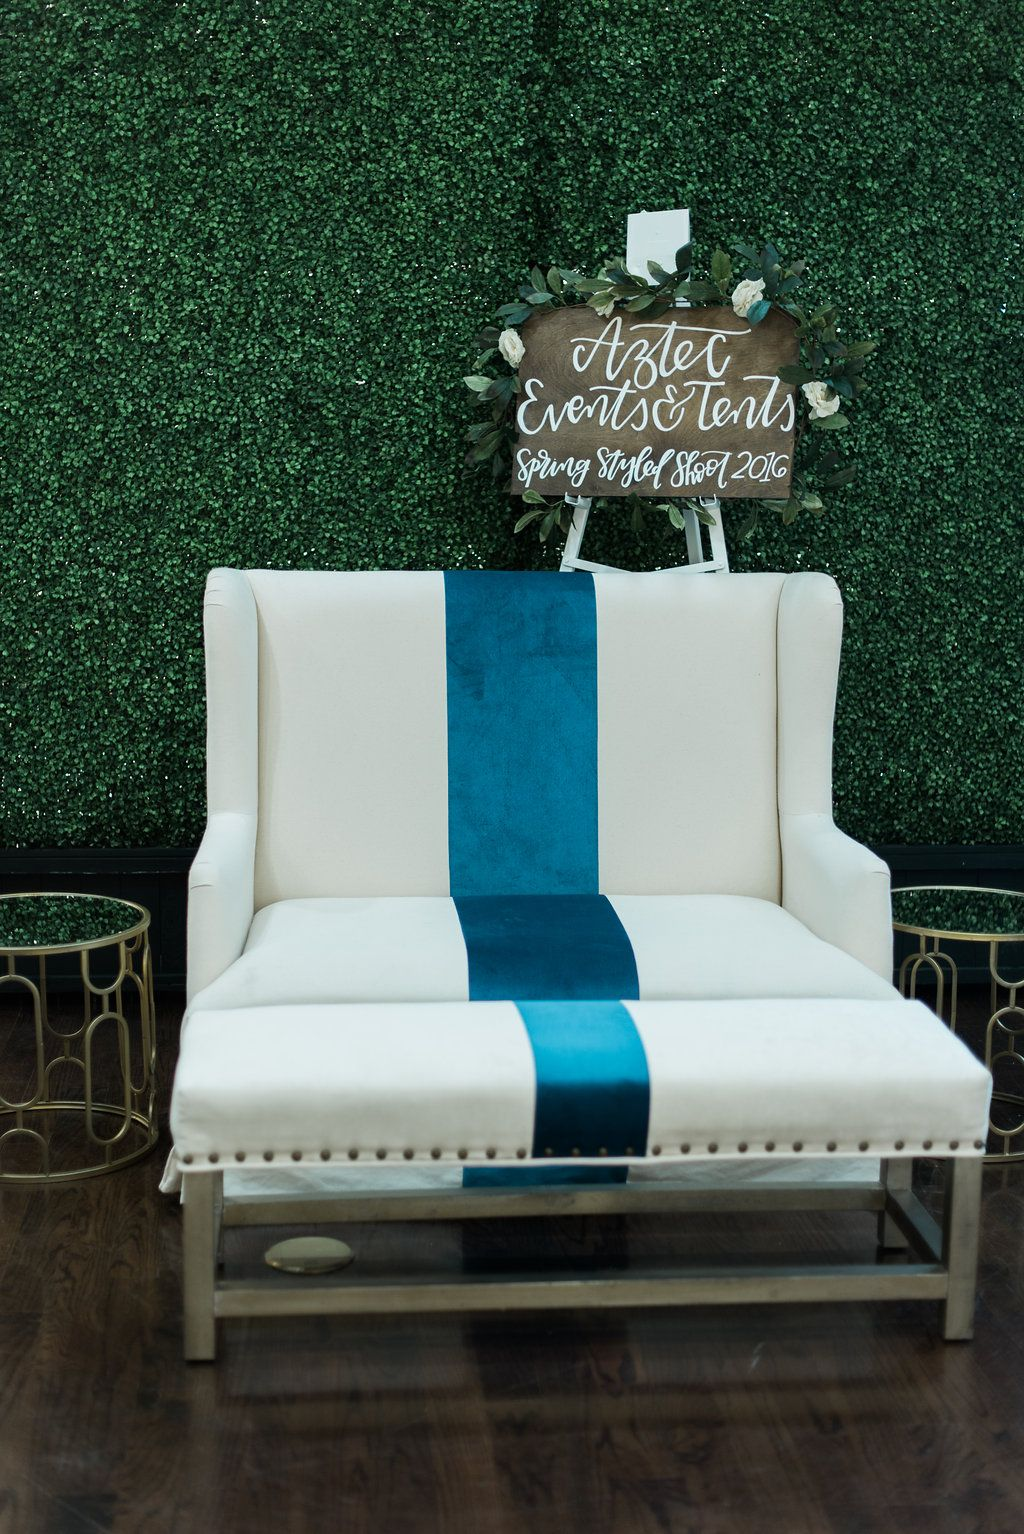 SPRING STYLED SHOOT 2016 Location Houston Texas Rentals Aztec Events u0026 Tents  & SPRING STYLED SHOOT 2016 Location: Houston Texas Rentals: Aztec ...